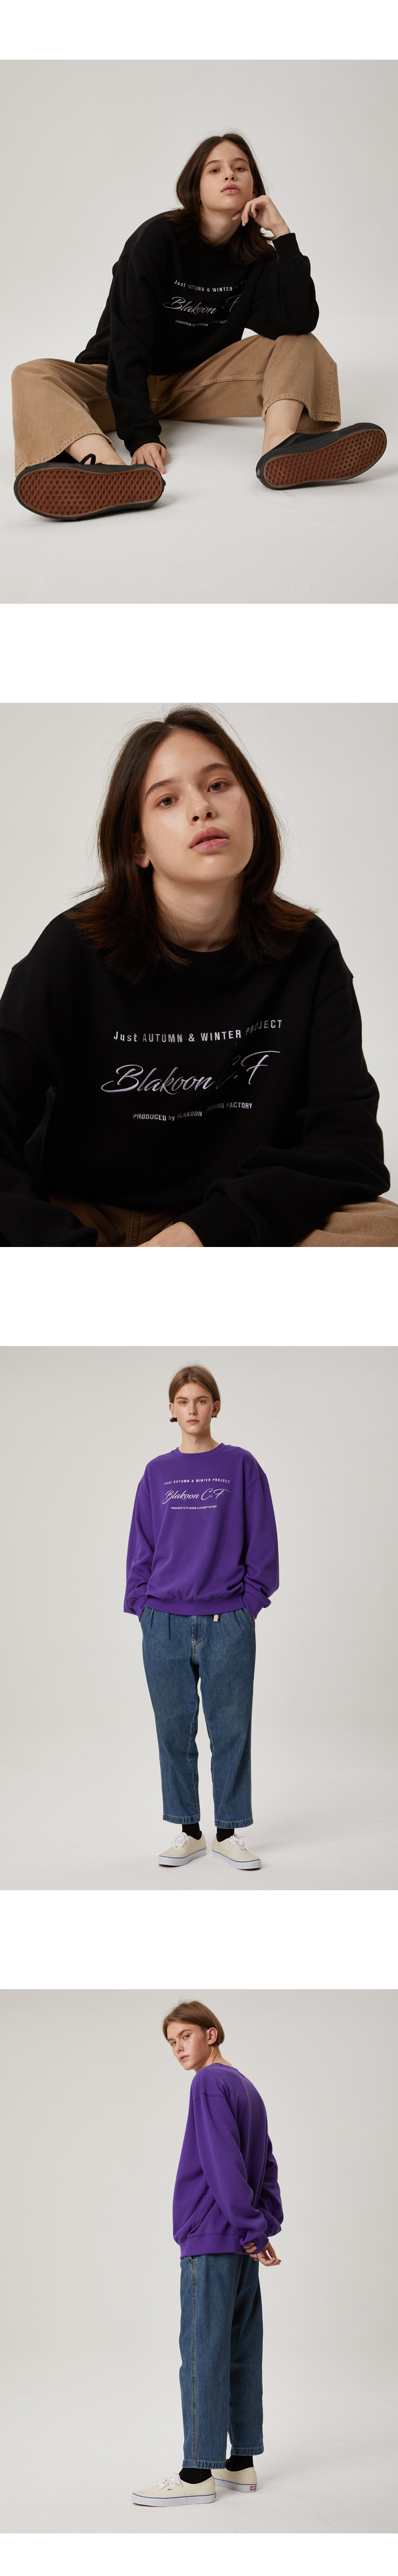 HANDWRITING-NEEDLEWORK-SWEATSHIRTS_02.jpg